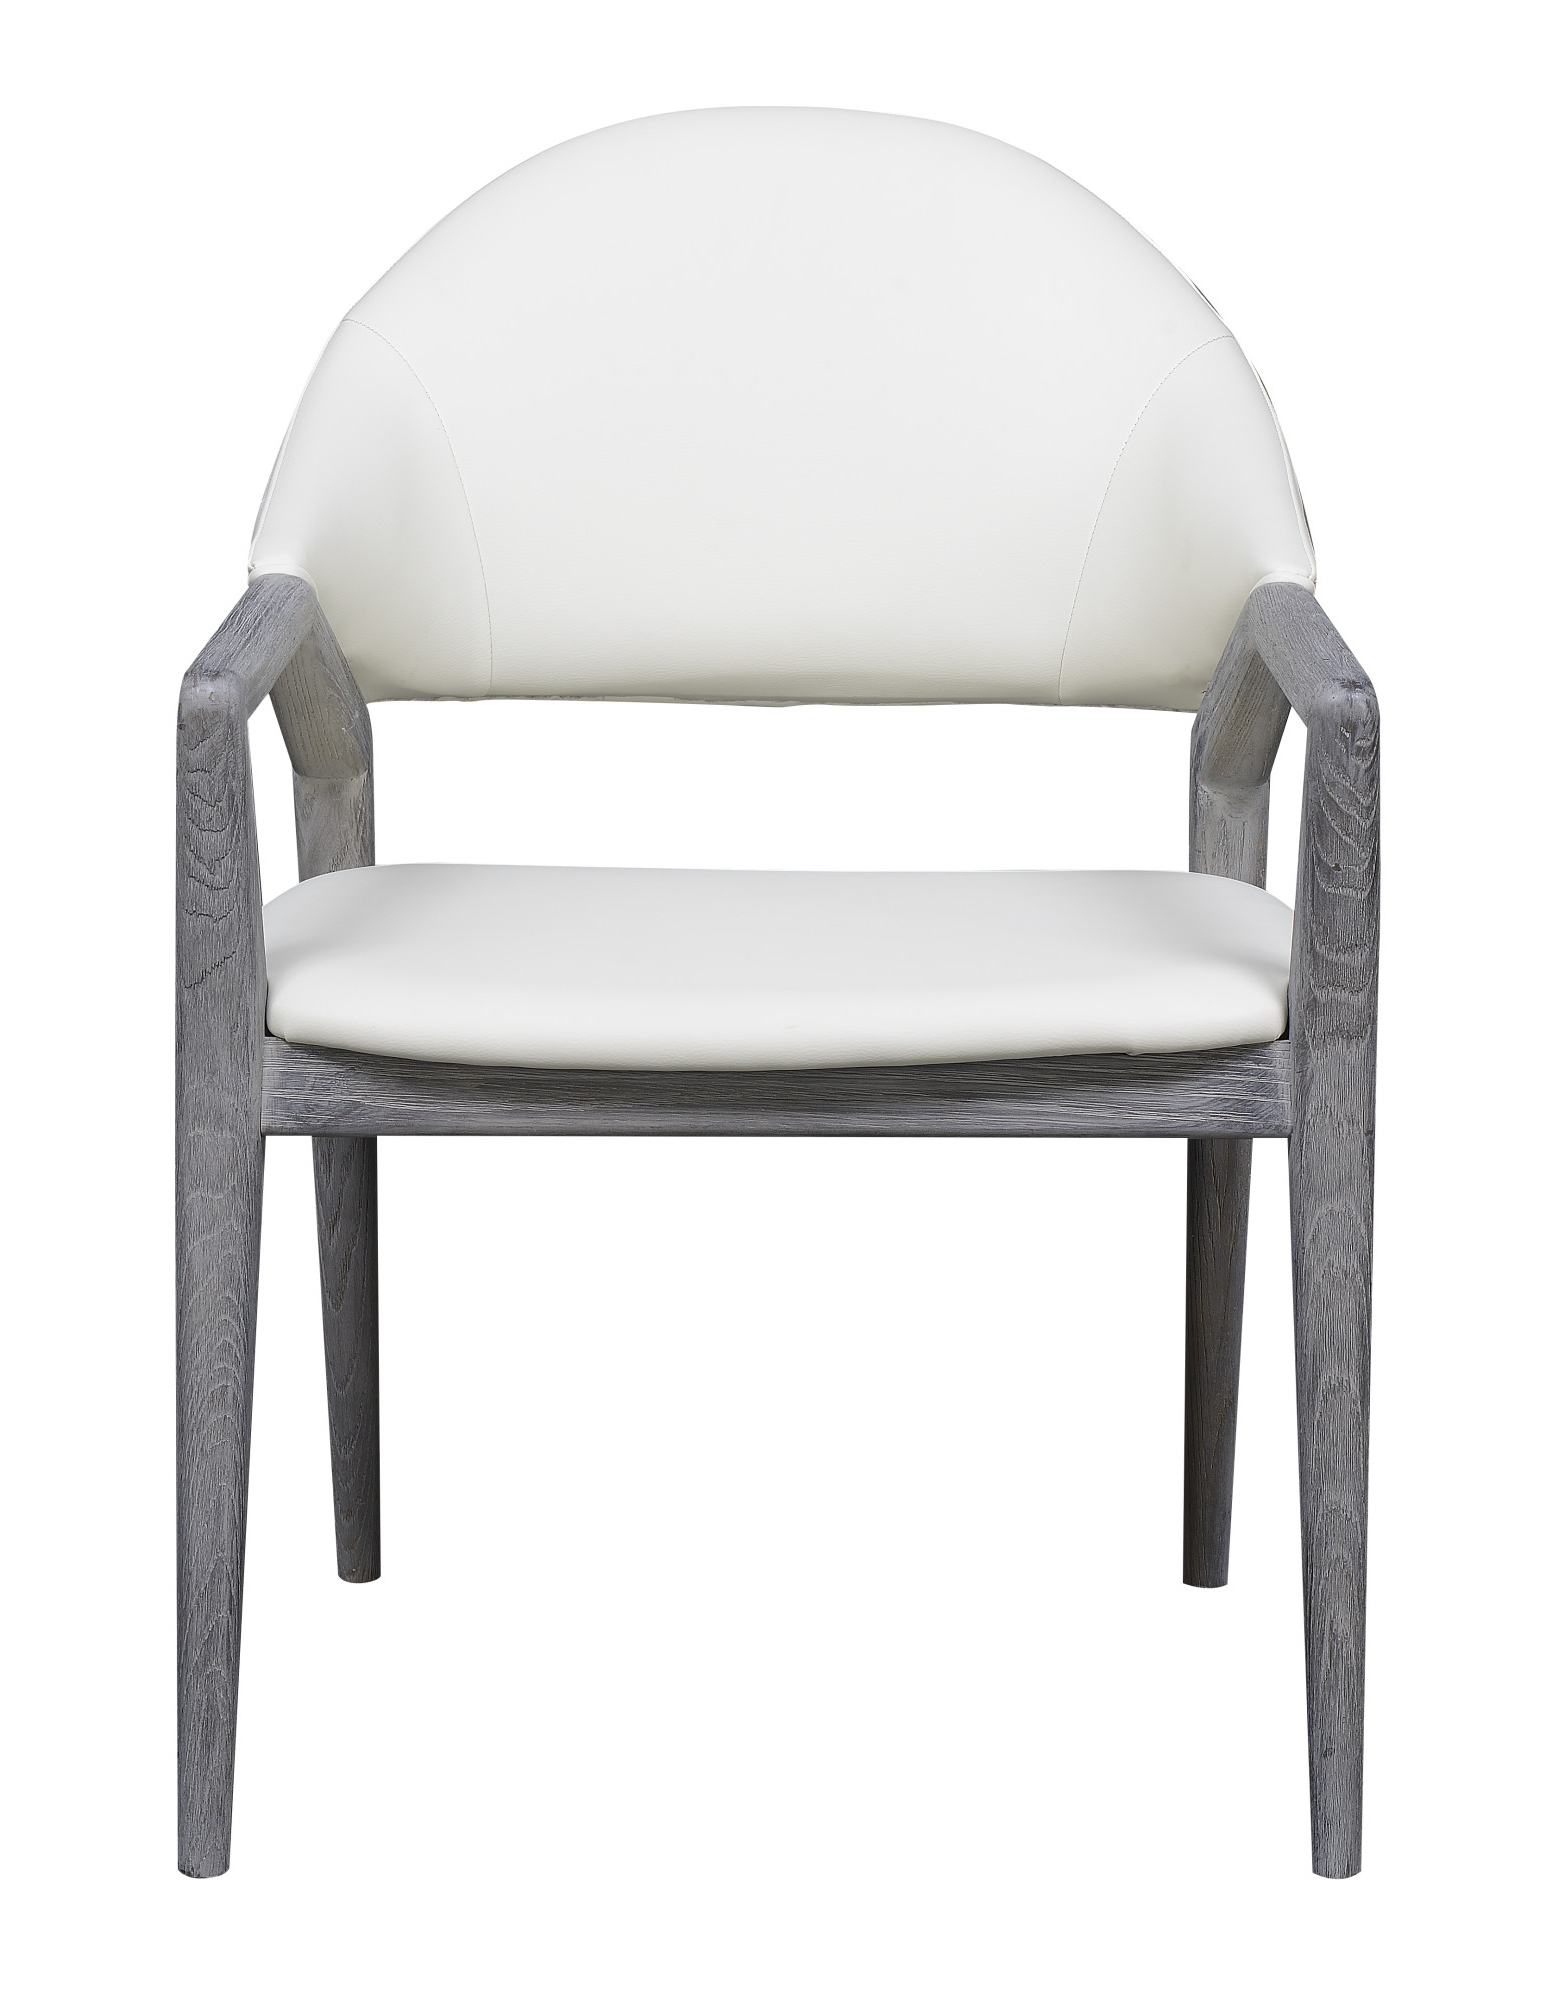 Emerald Home Carrera Slate Gray And Platinum White Dining Arm Chair With  Faux Leather Upholstery And Curved Wood Frame Regarding Carrera Contemporary Black Dining Buffets (View 13 of 20)